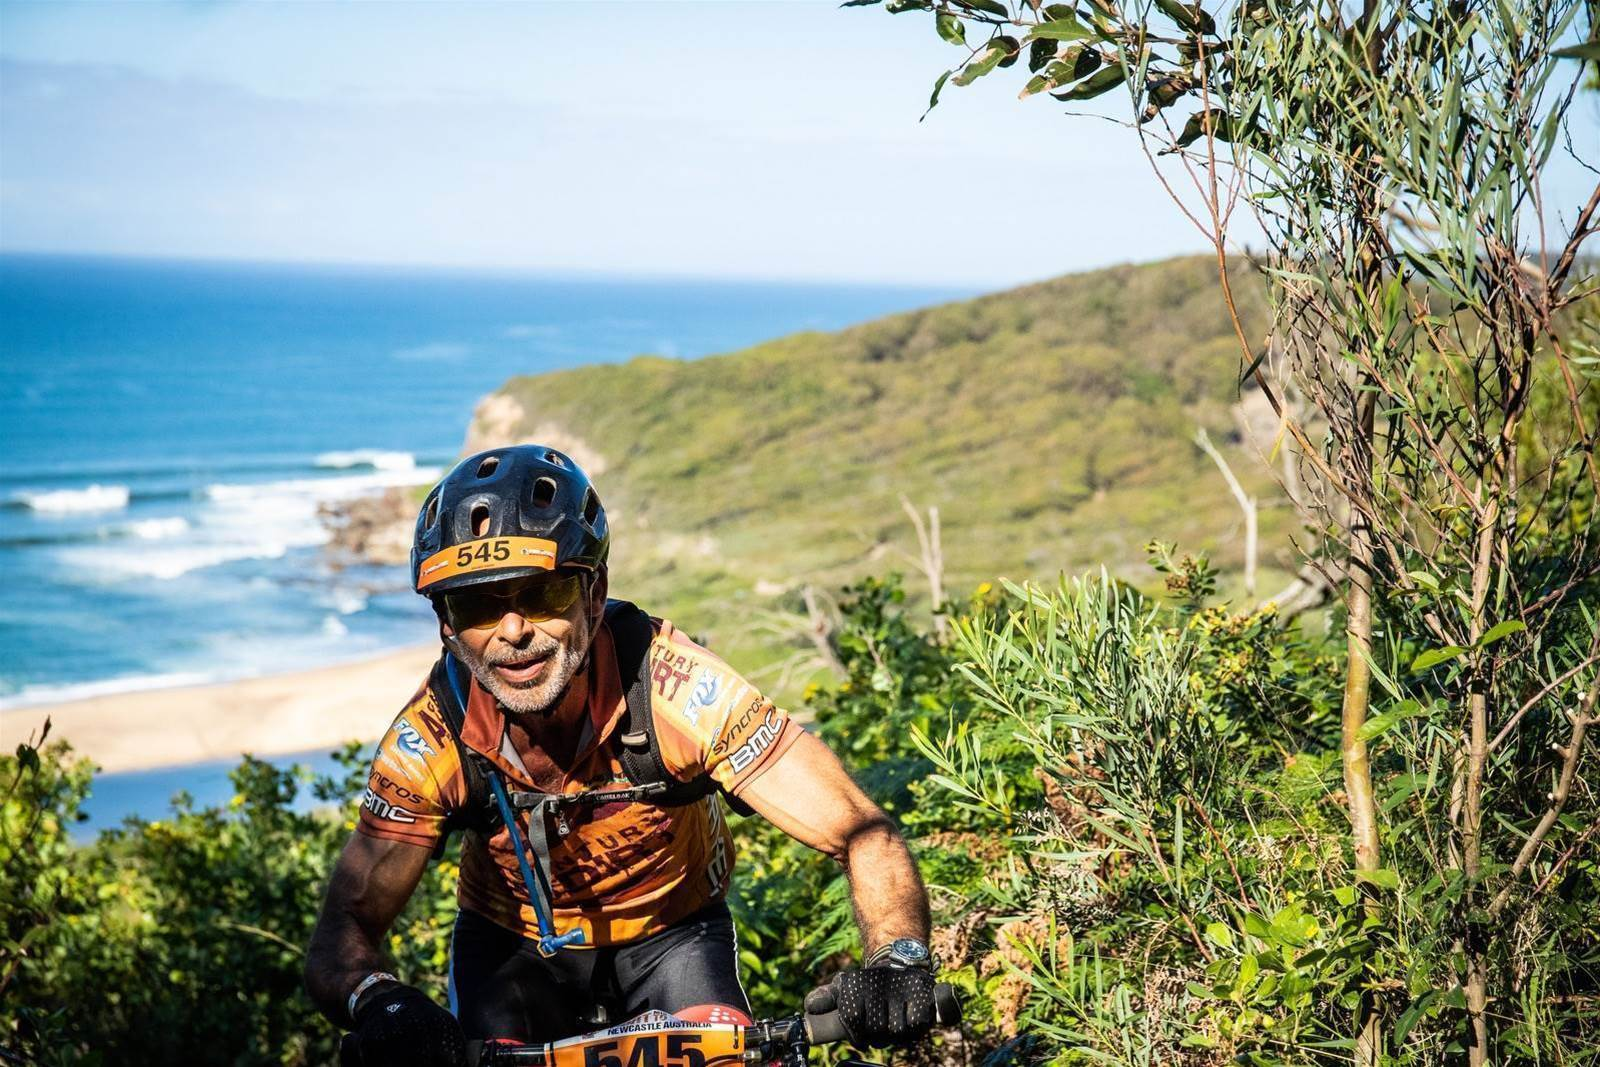 c197a94a2e6 The 2019 Port to Port MTB course has been released - this race just gets  better with age!